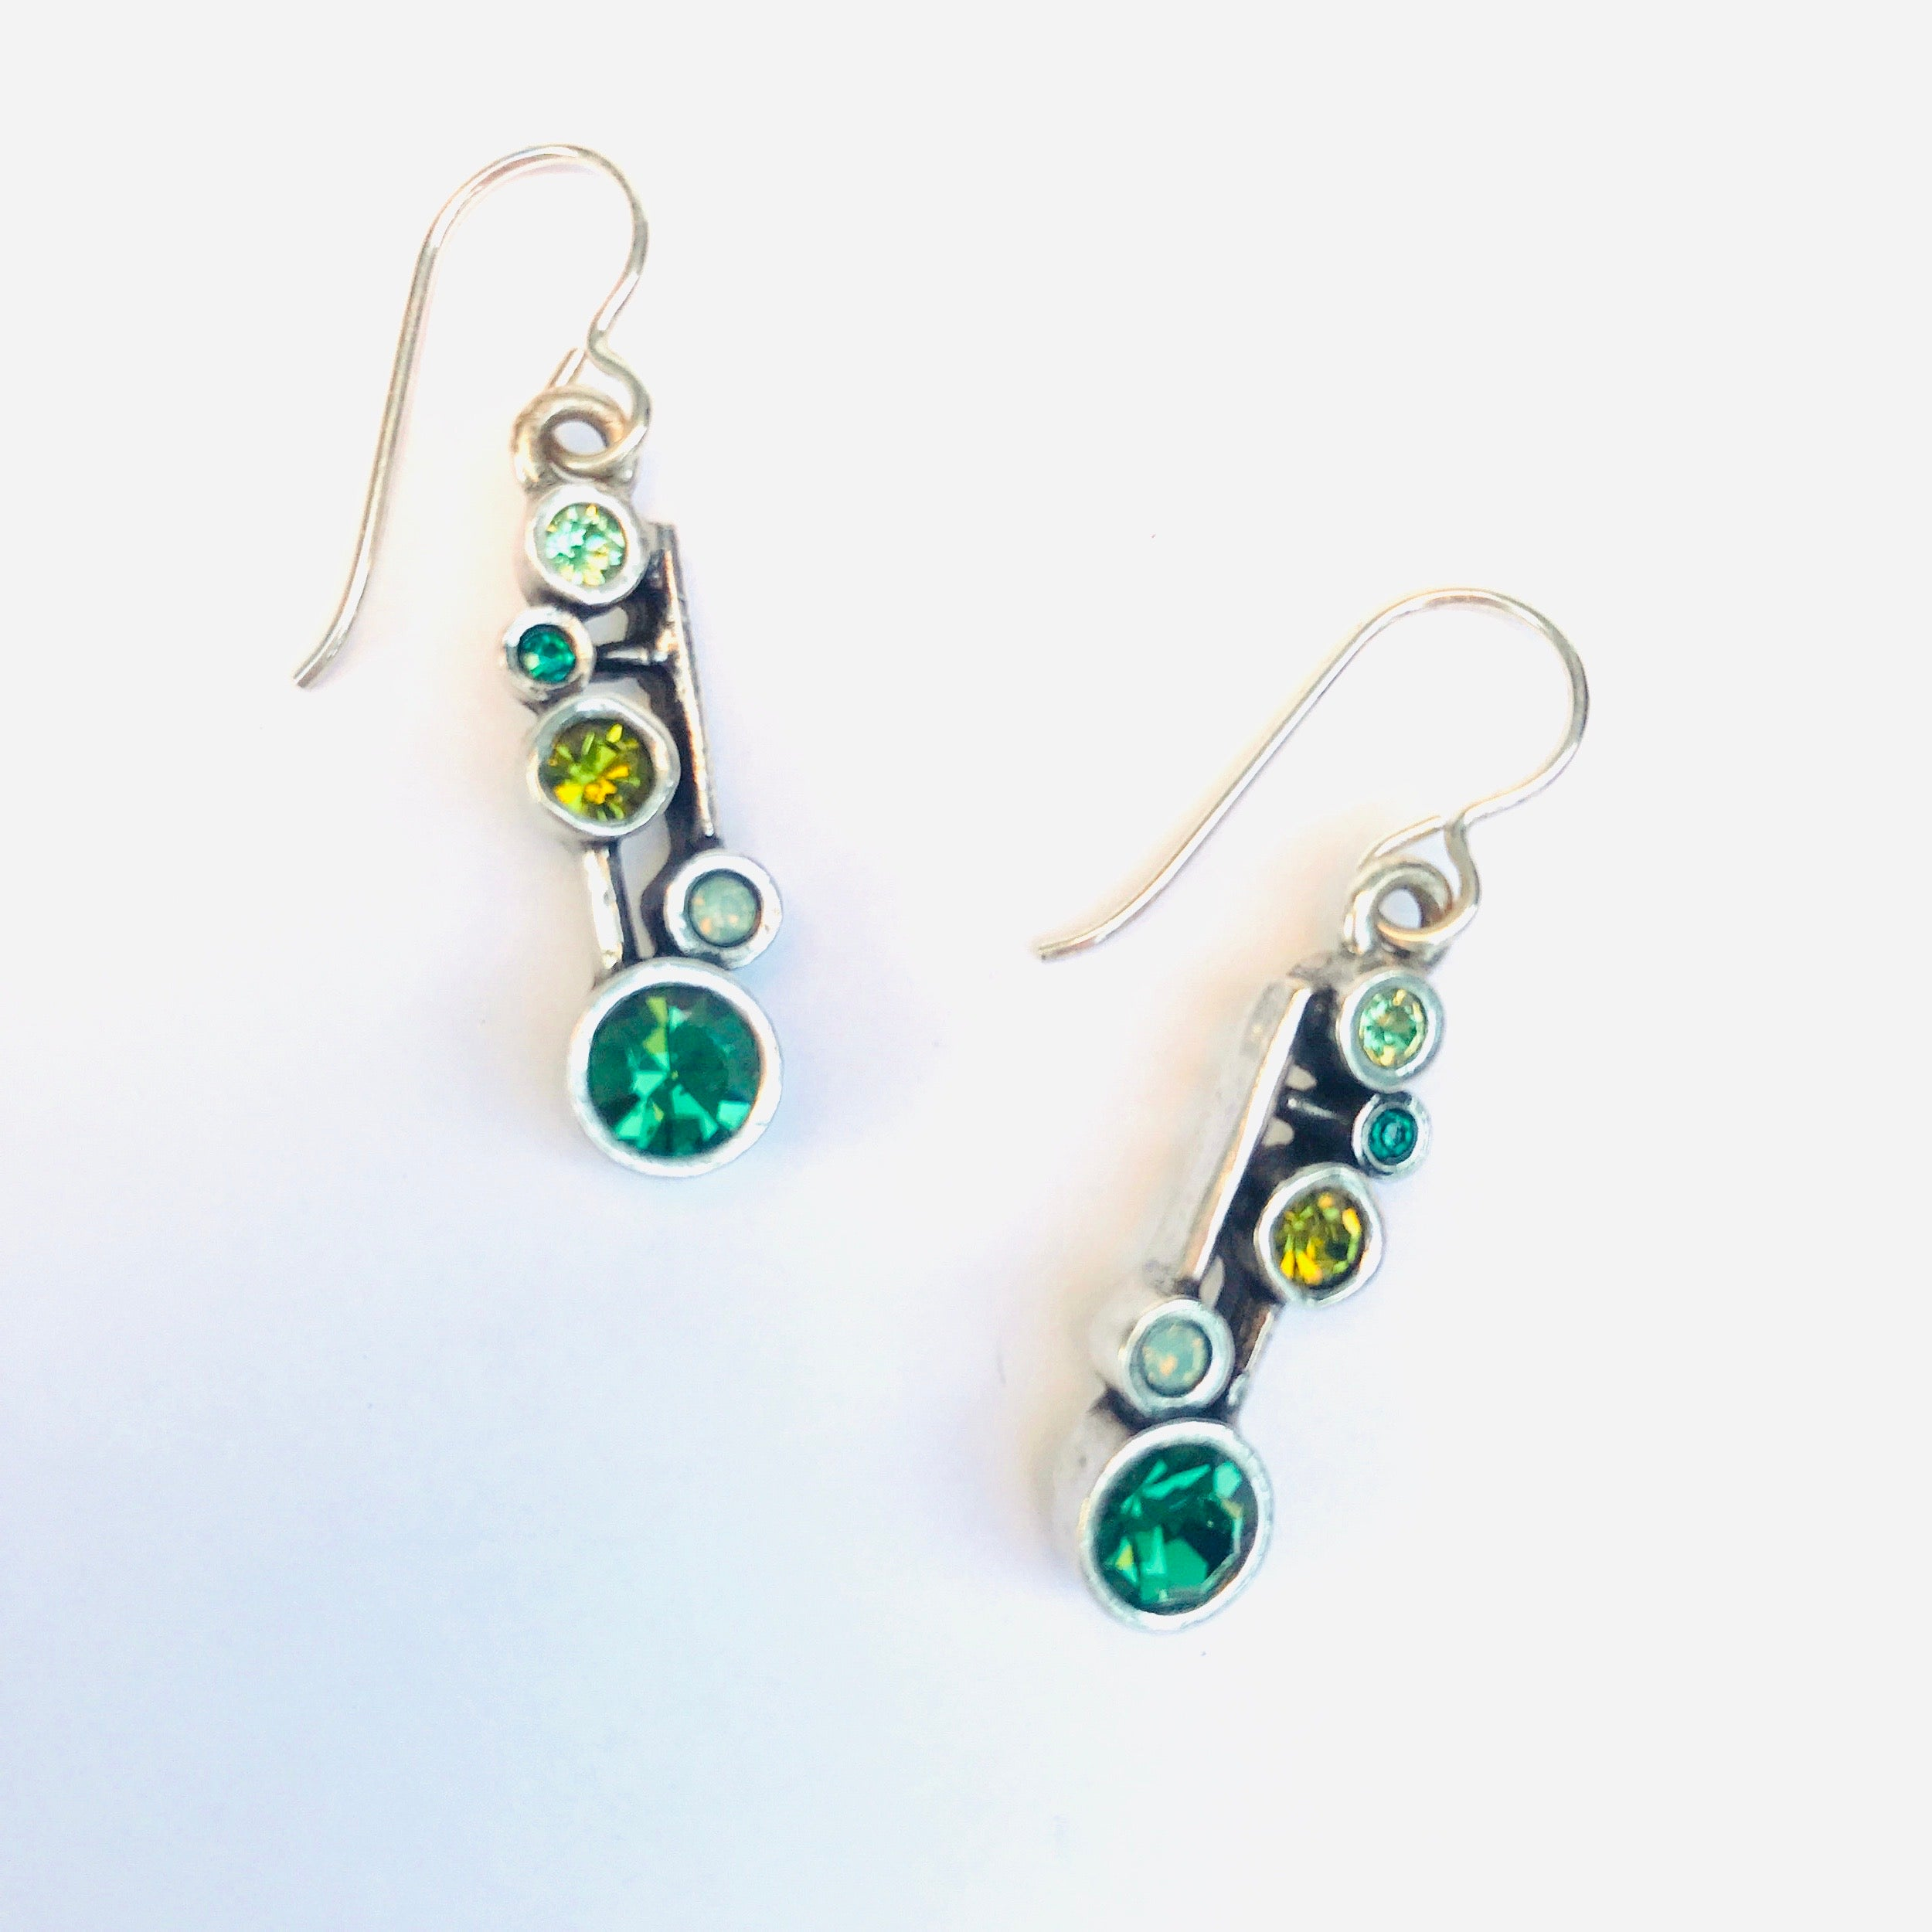 Dew Drops Earrings in Envy